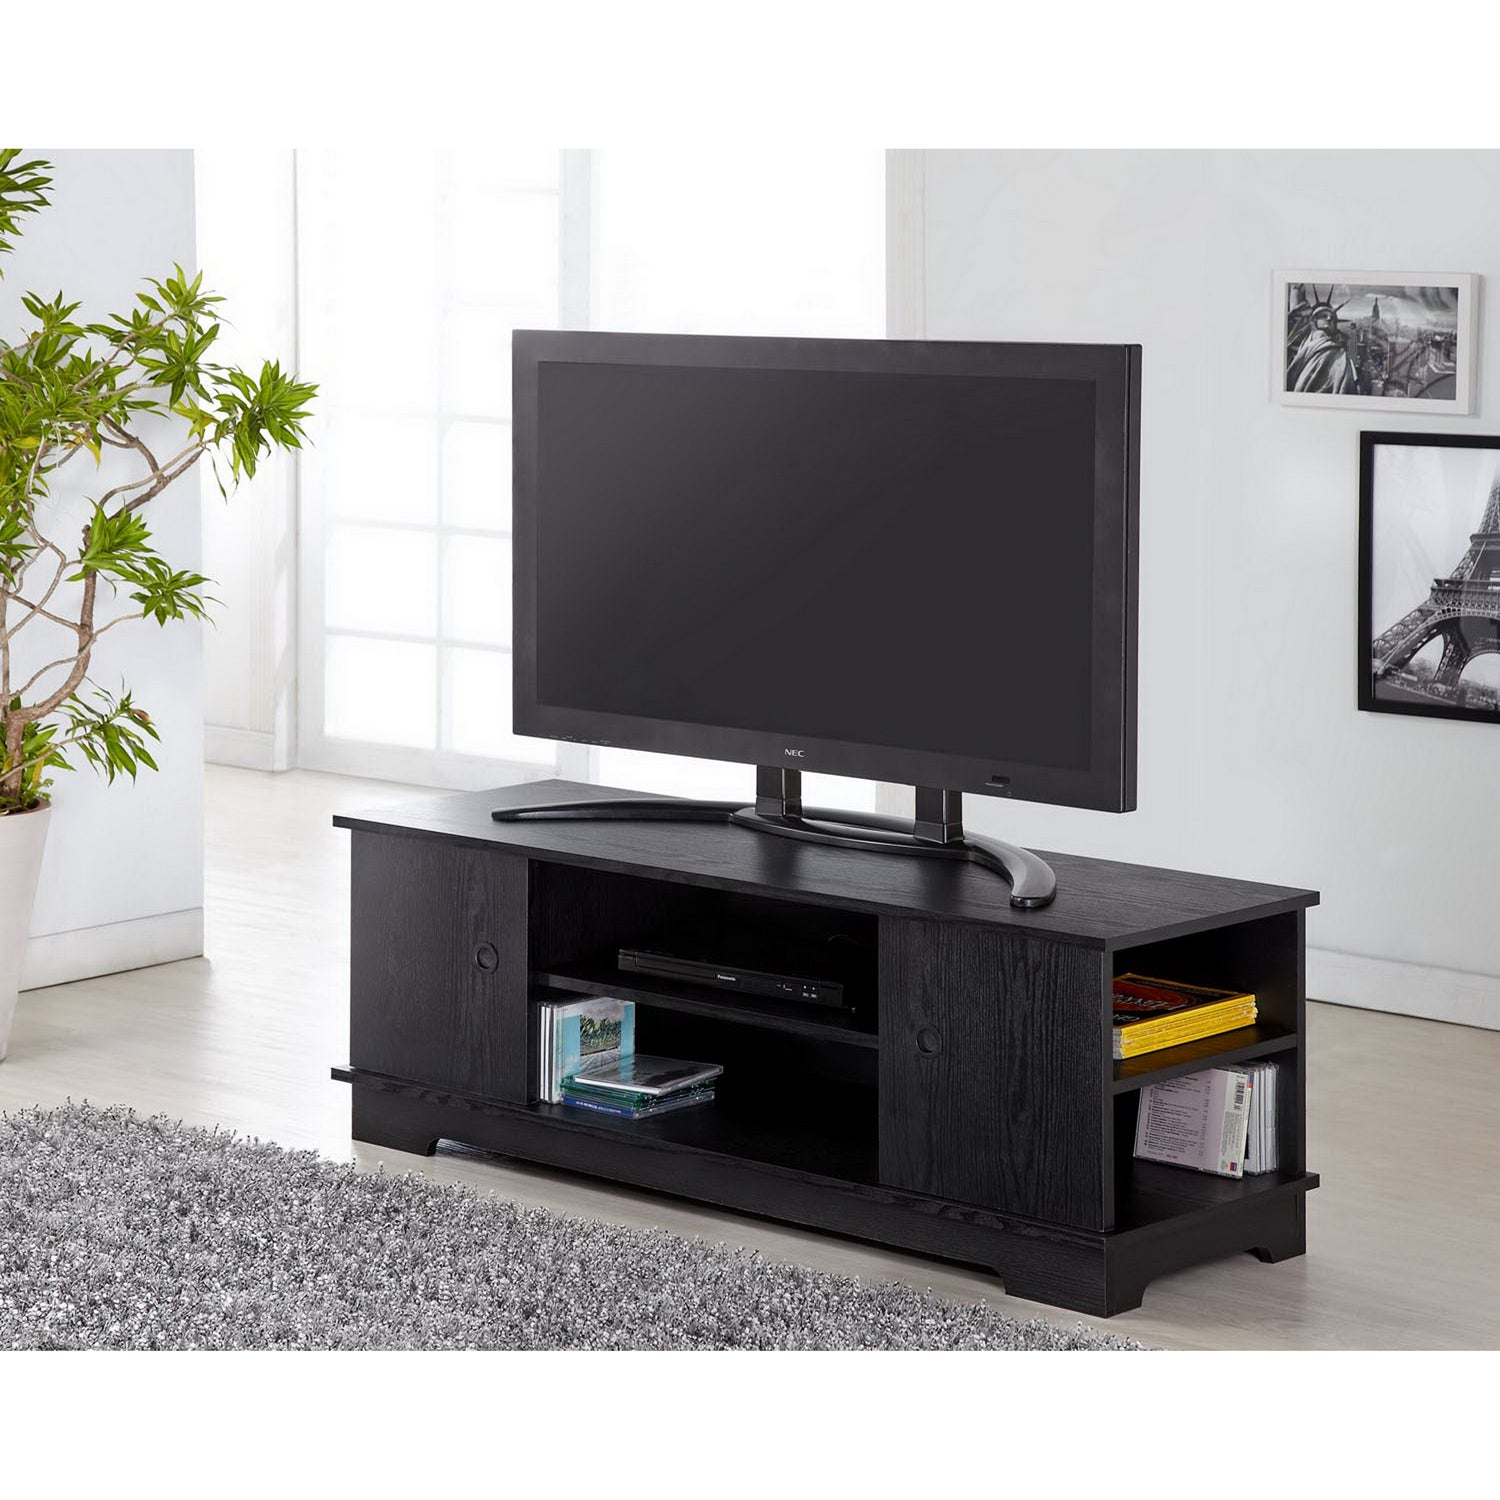 Furniture Of America Colbie Modern TV Cabinet In Black   Free Shipping  Today   Overstock   14059976